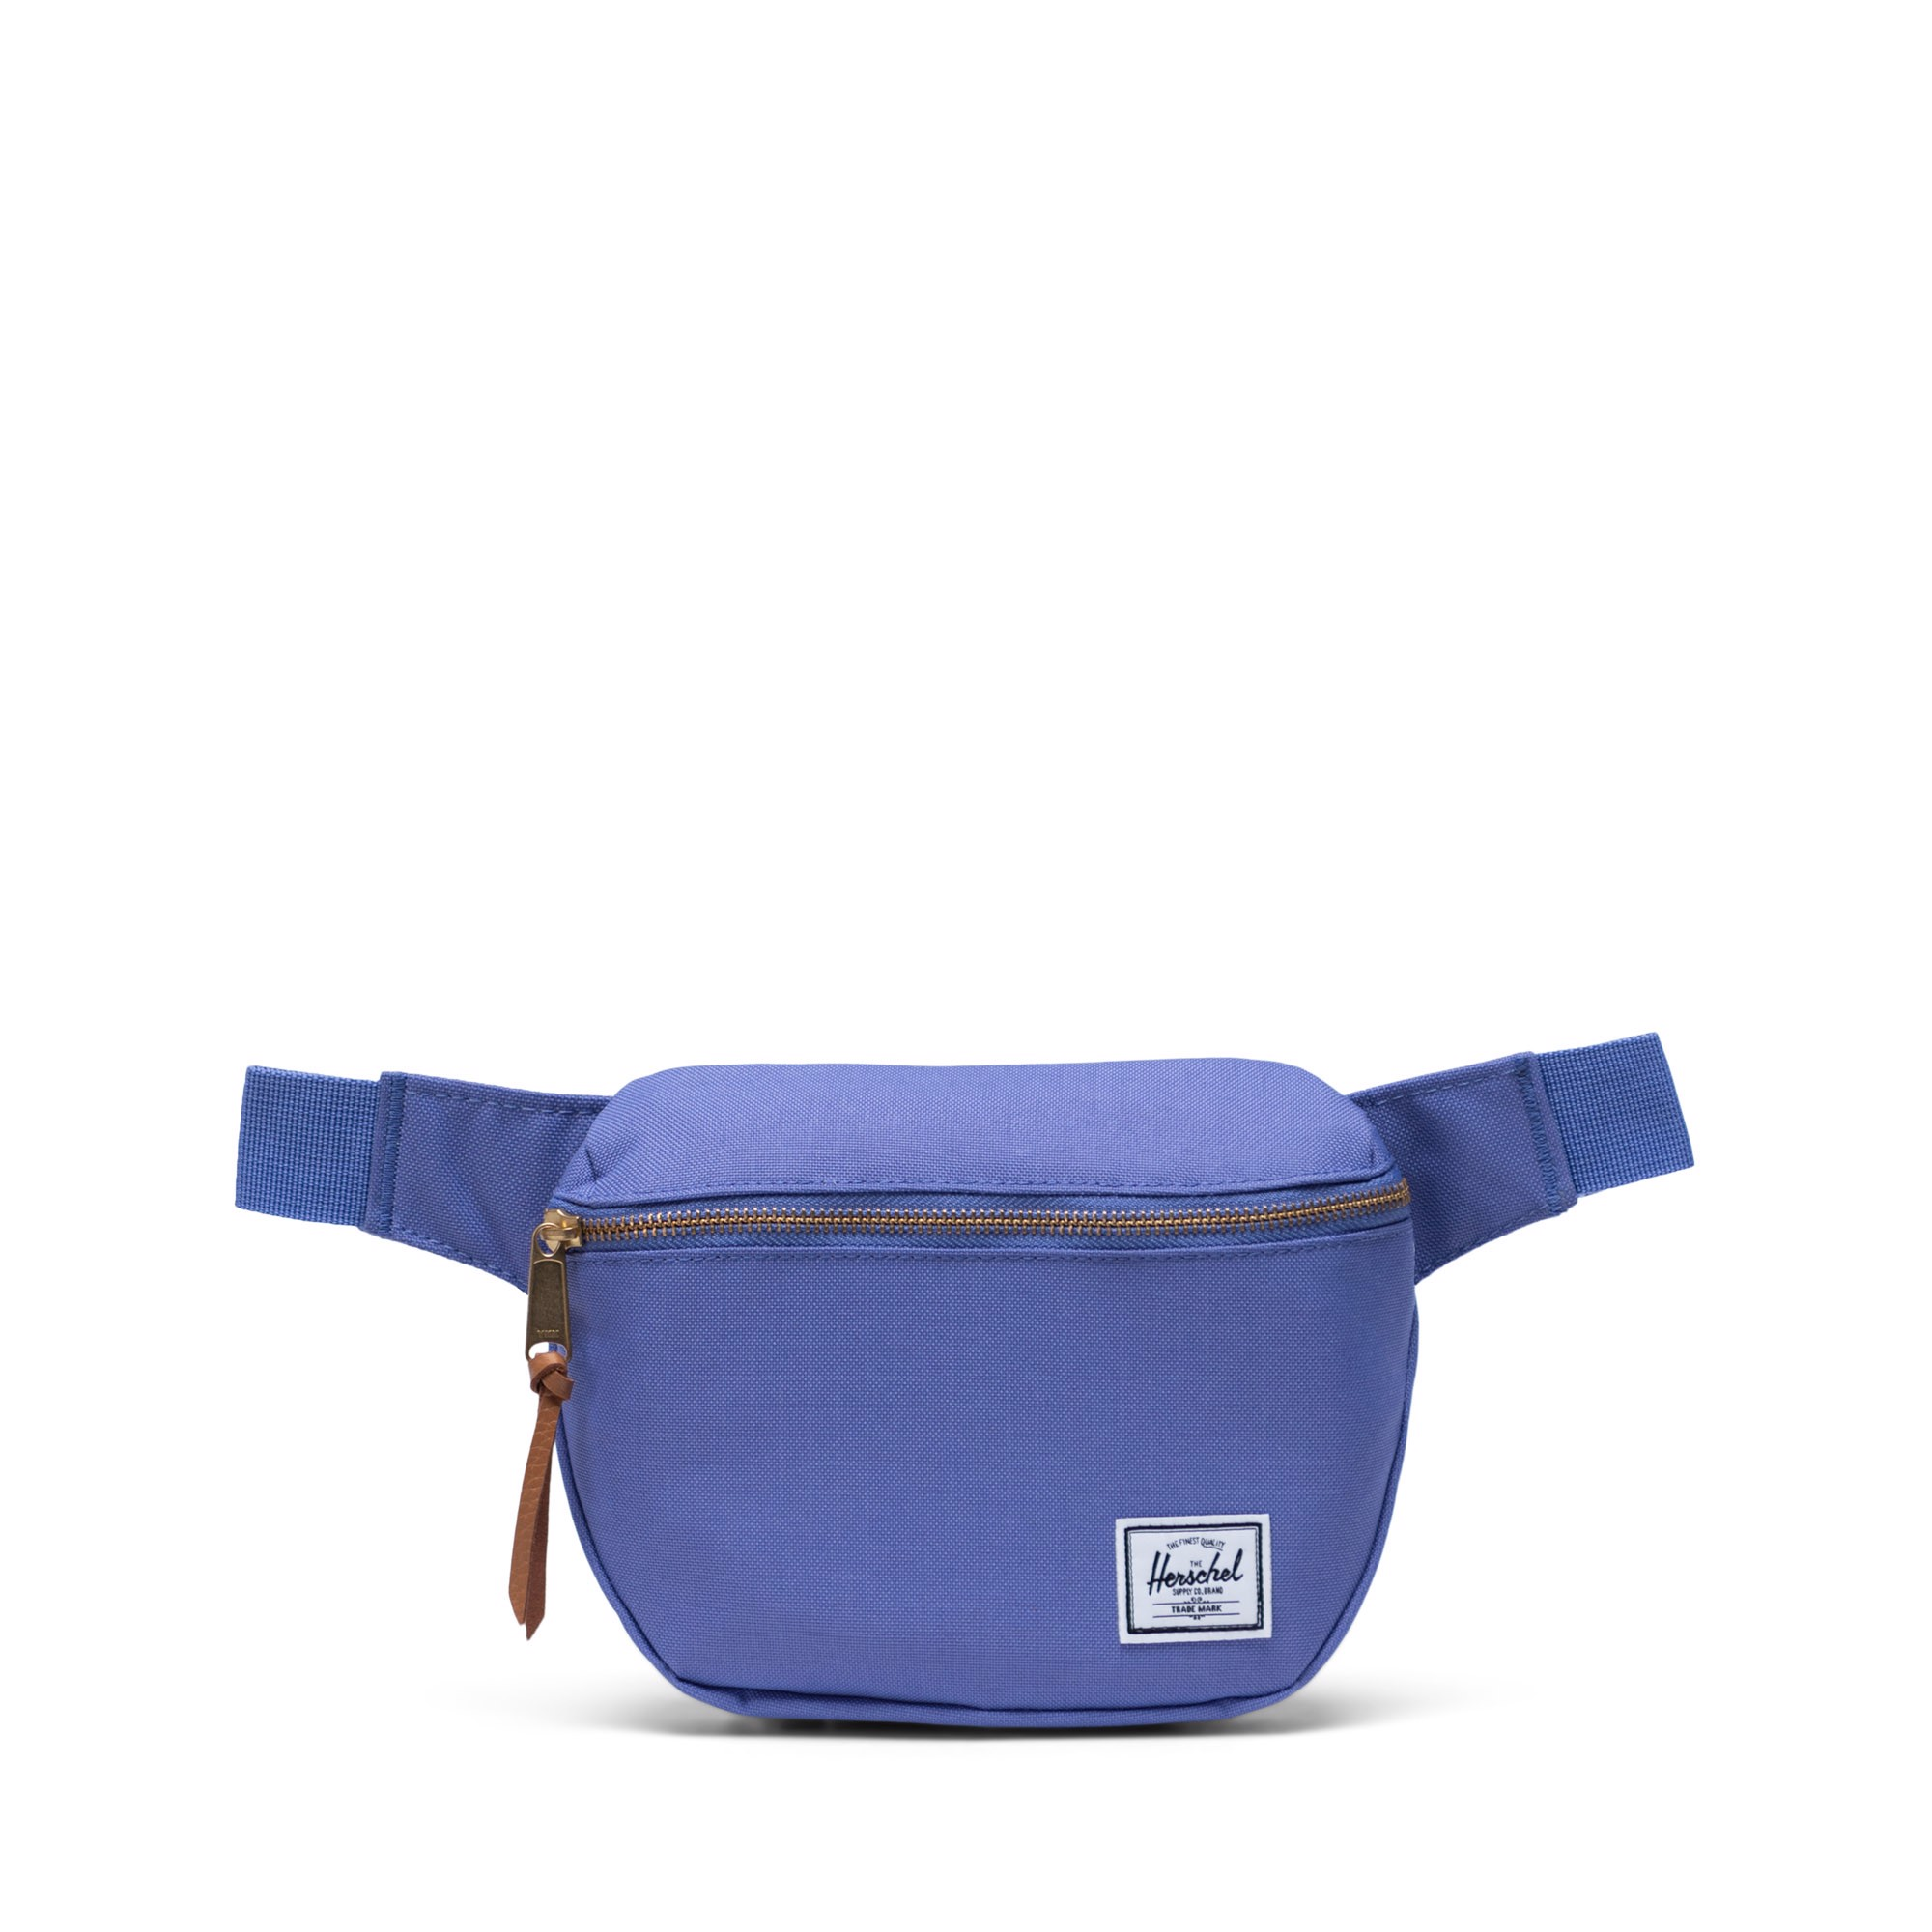 Herschel Fifteen Waist Pack - Dusted Peri